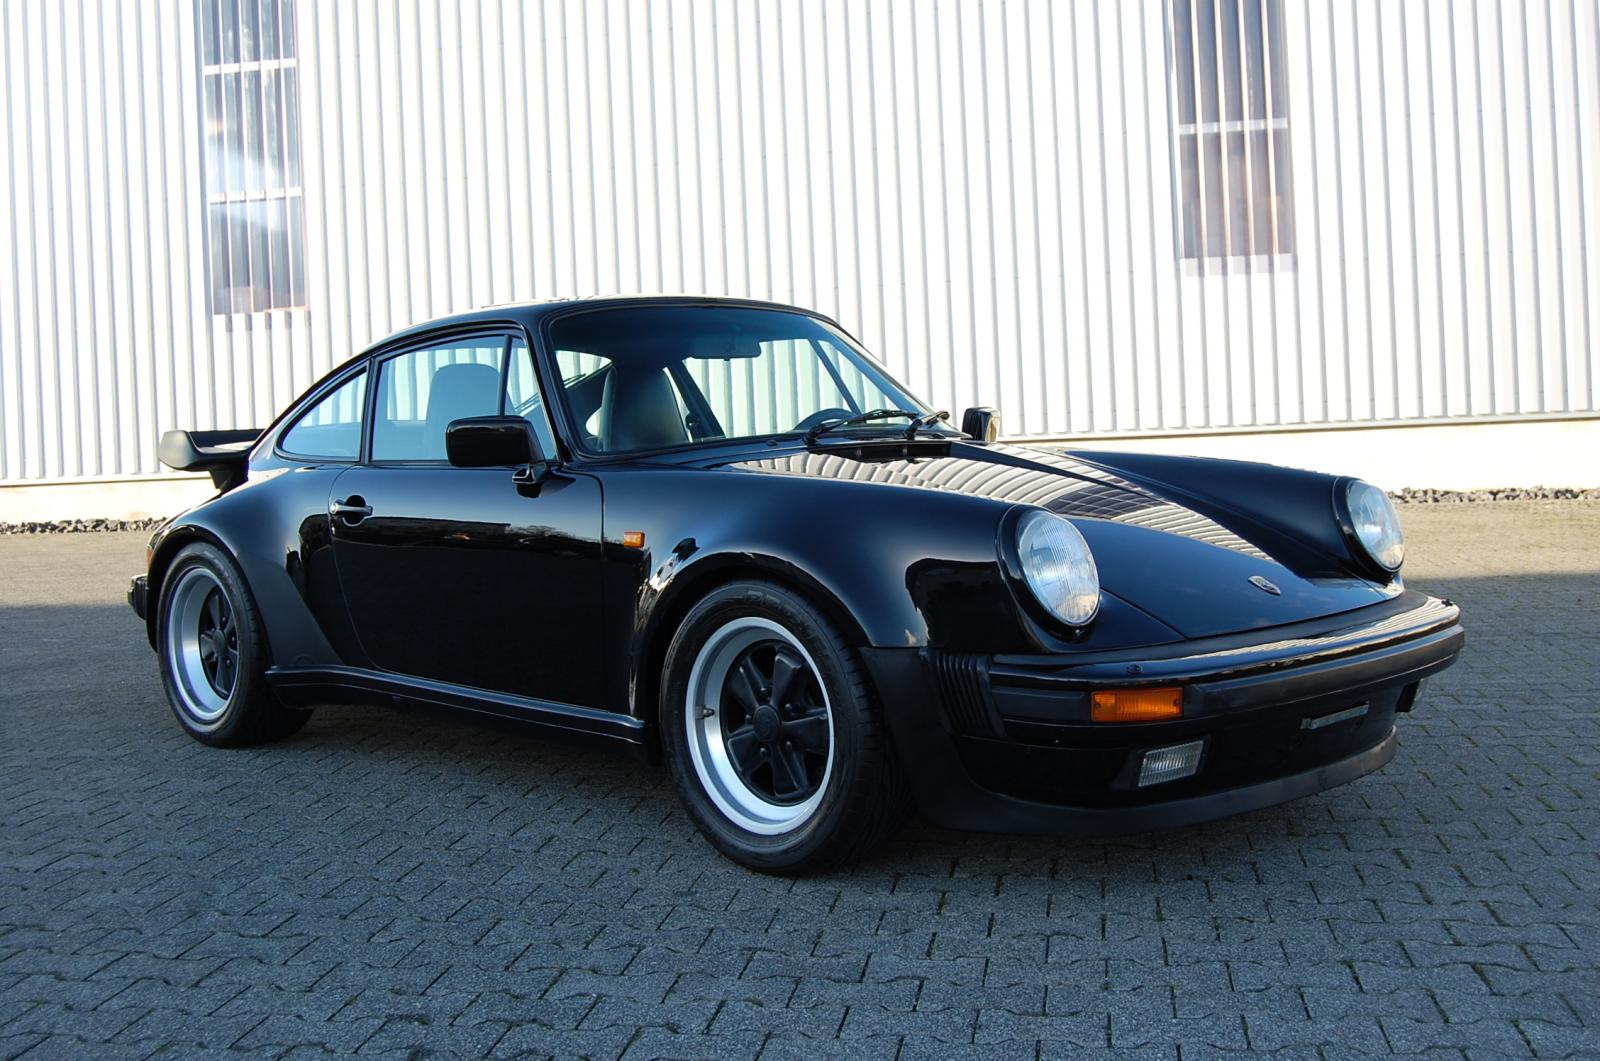 Porsche 930 Turbo To Purchase Youarerich Net